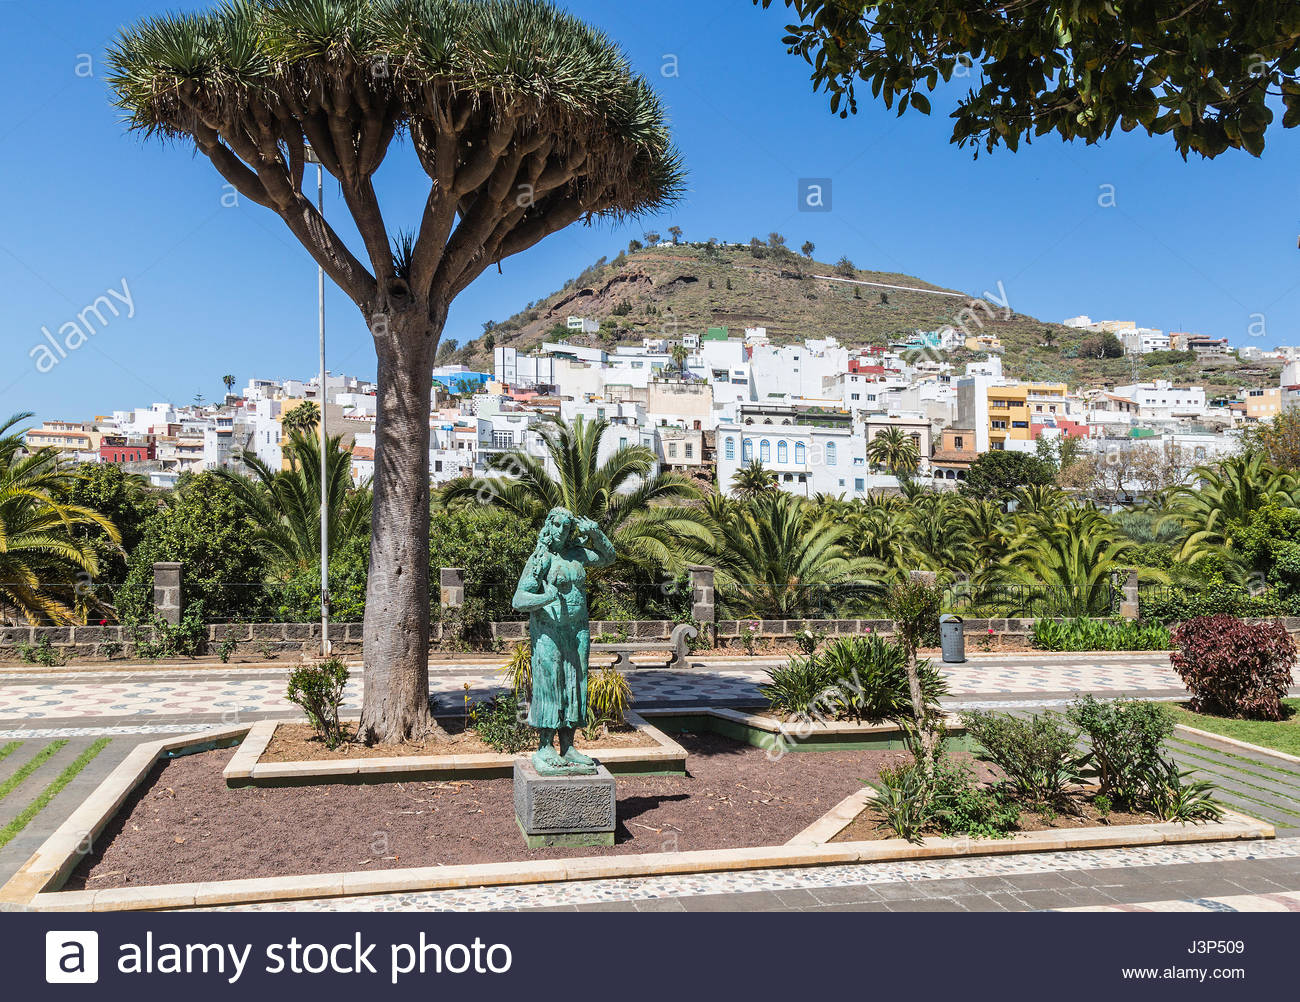 Statue In The Municipal Gardens At Arucas On Gran Canaria, One Of The  Canary Islands, With The Town Houses On The Hillside In The Background